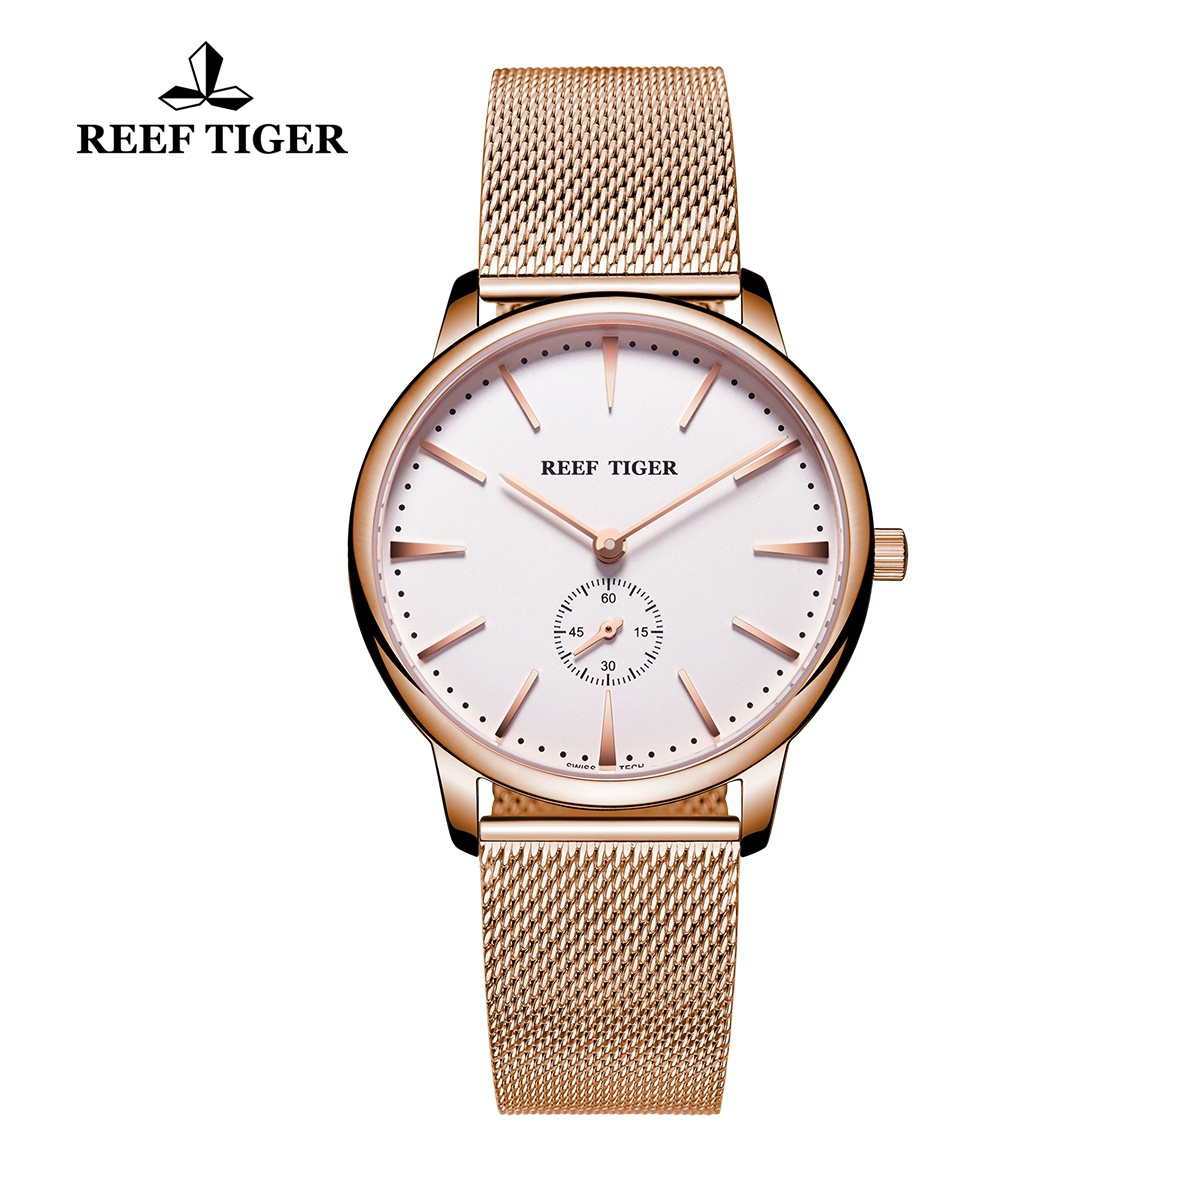 Reef Tiger Vintage Couple Watch White Dial Full Rose Gold Mens Watches RGA820-MPWP